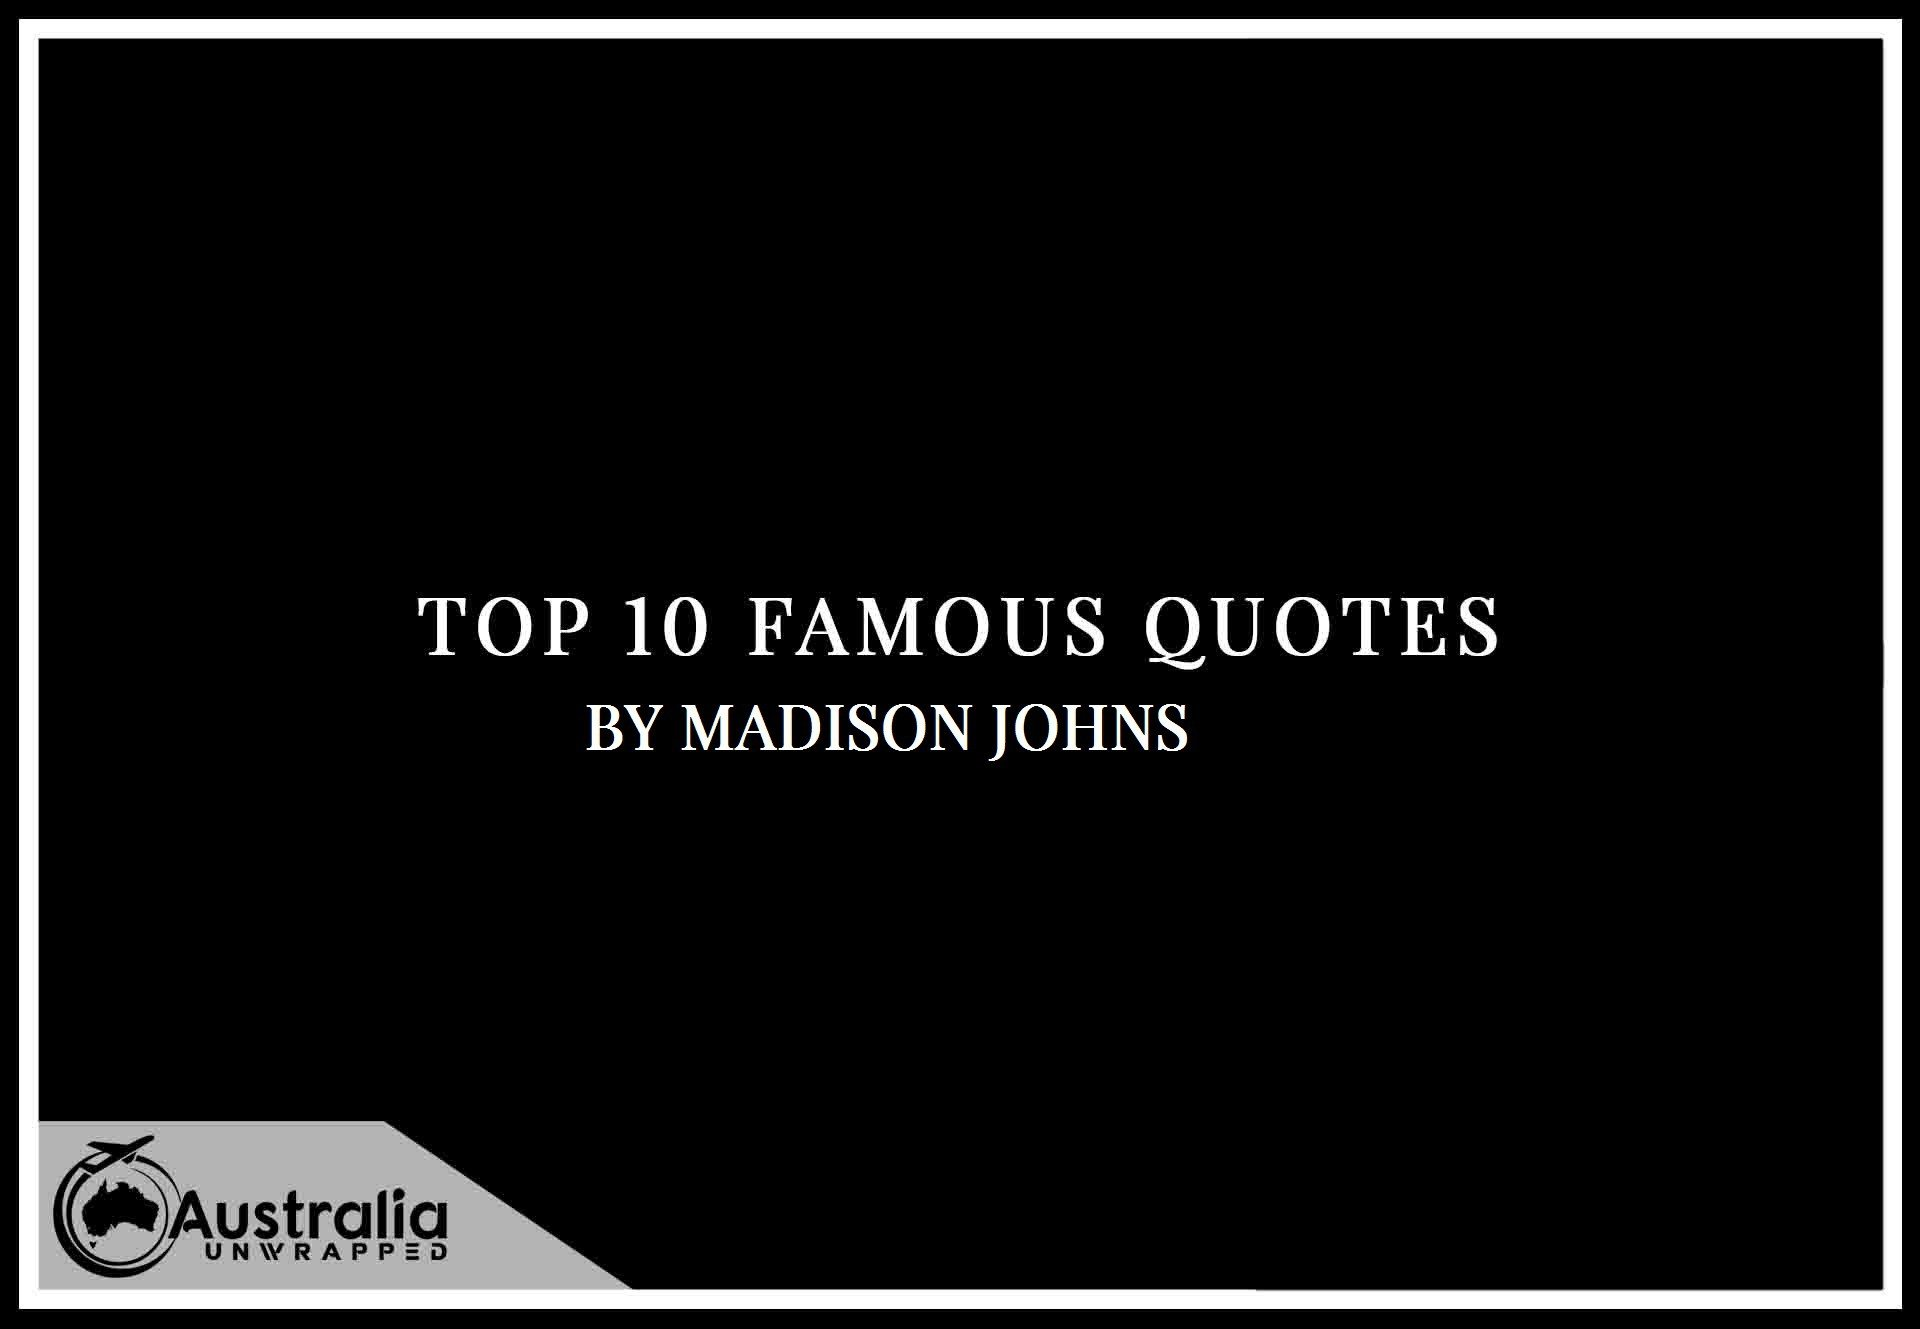 Madison Johns's Top 10 Popular and Famous Quotes